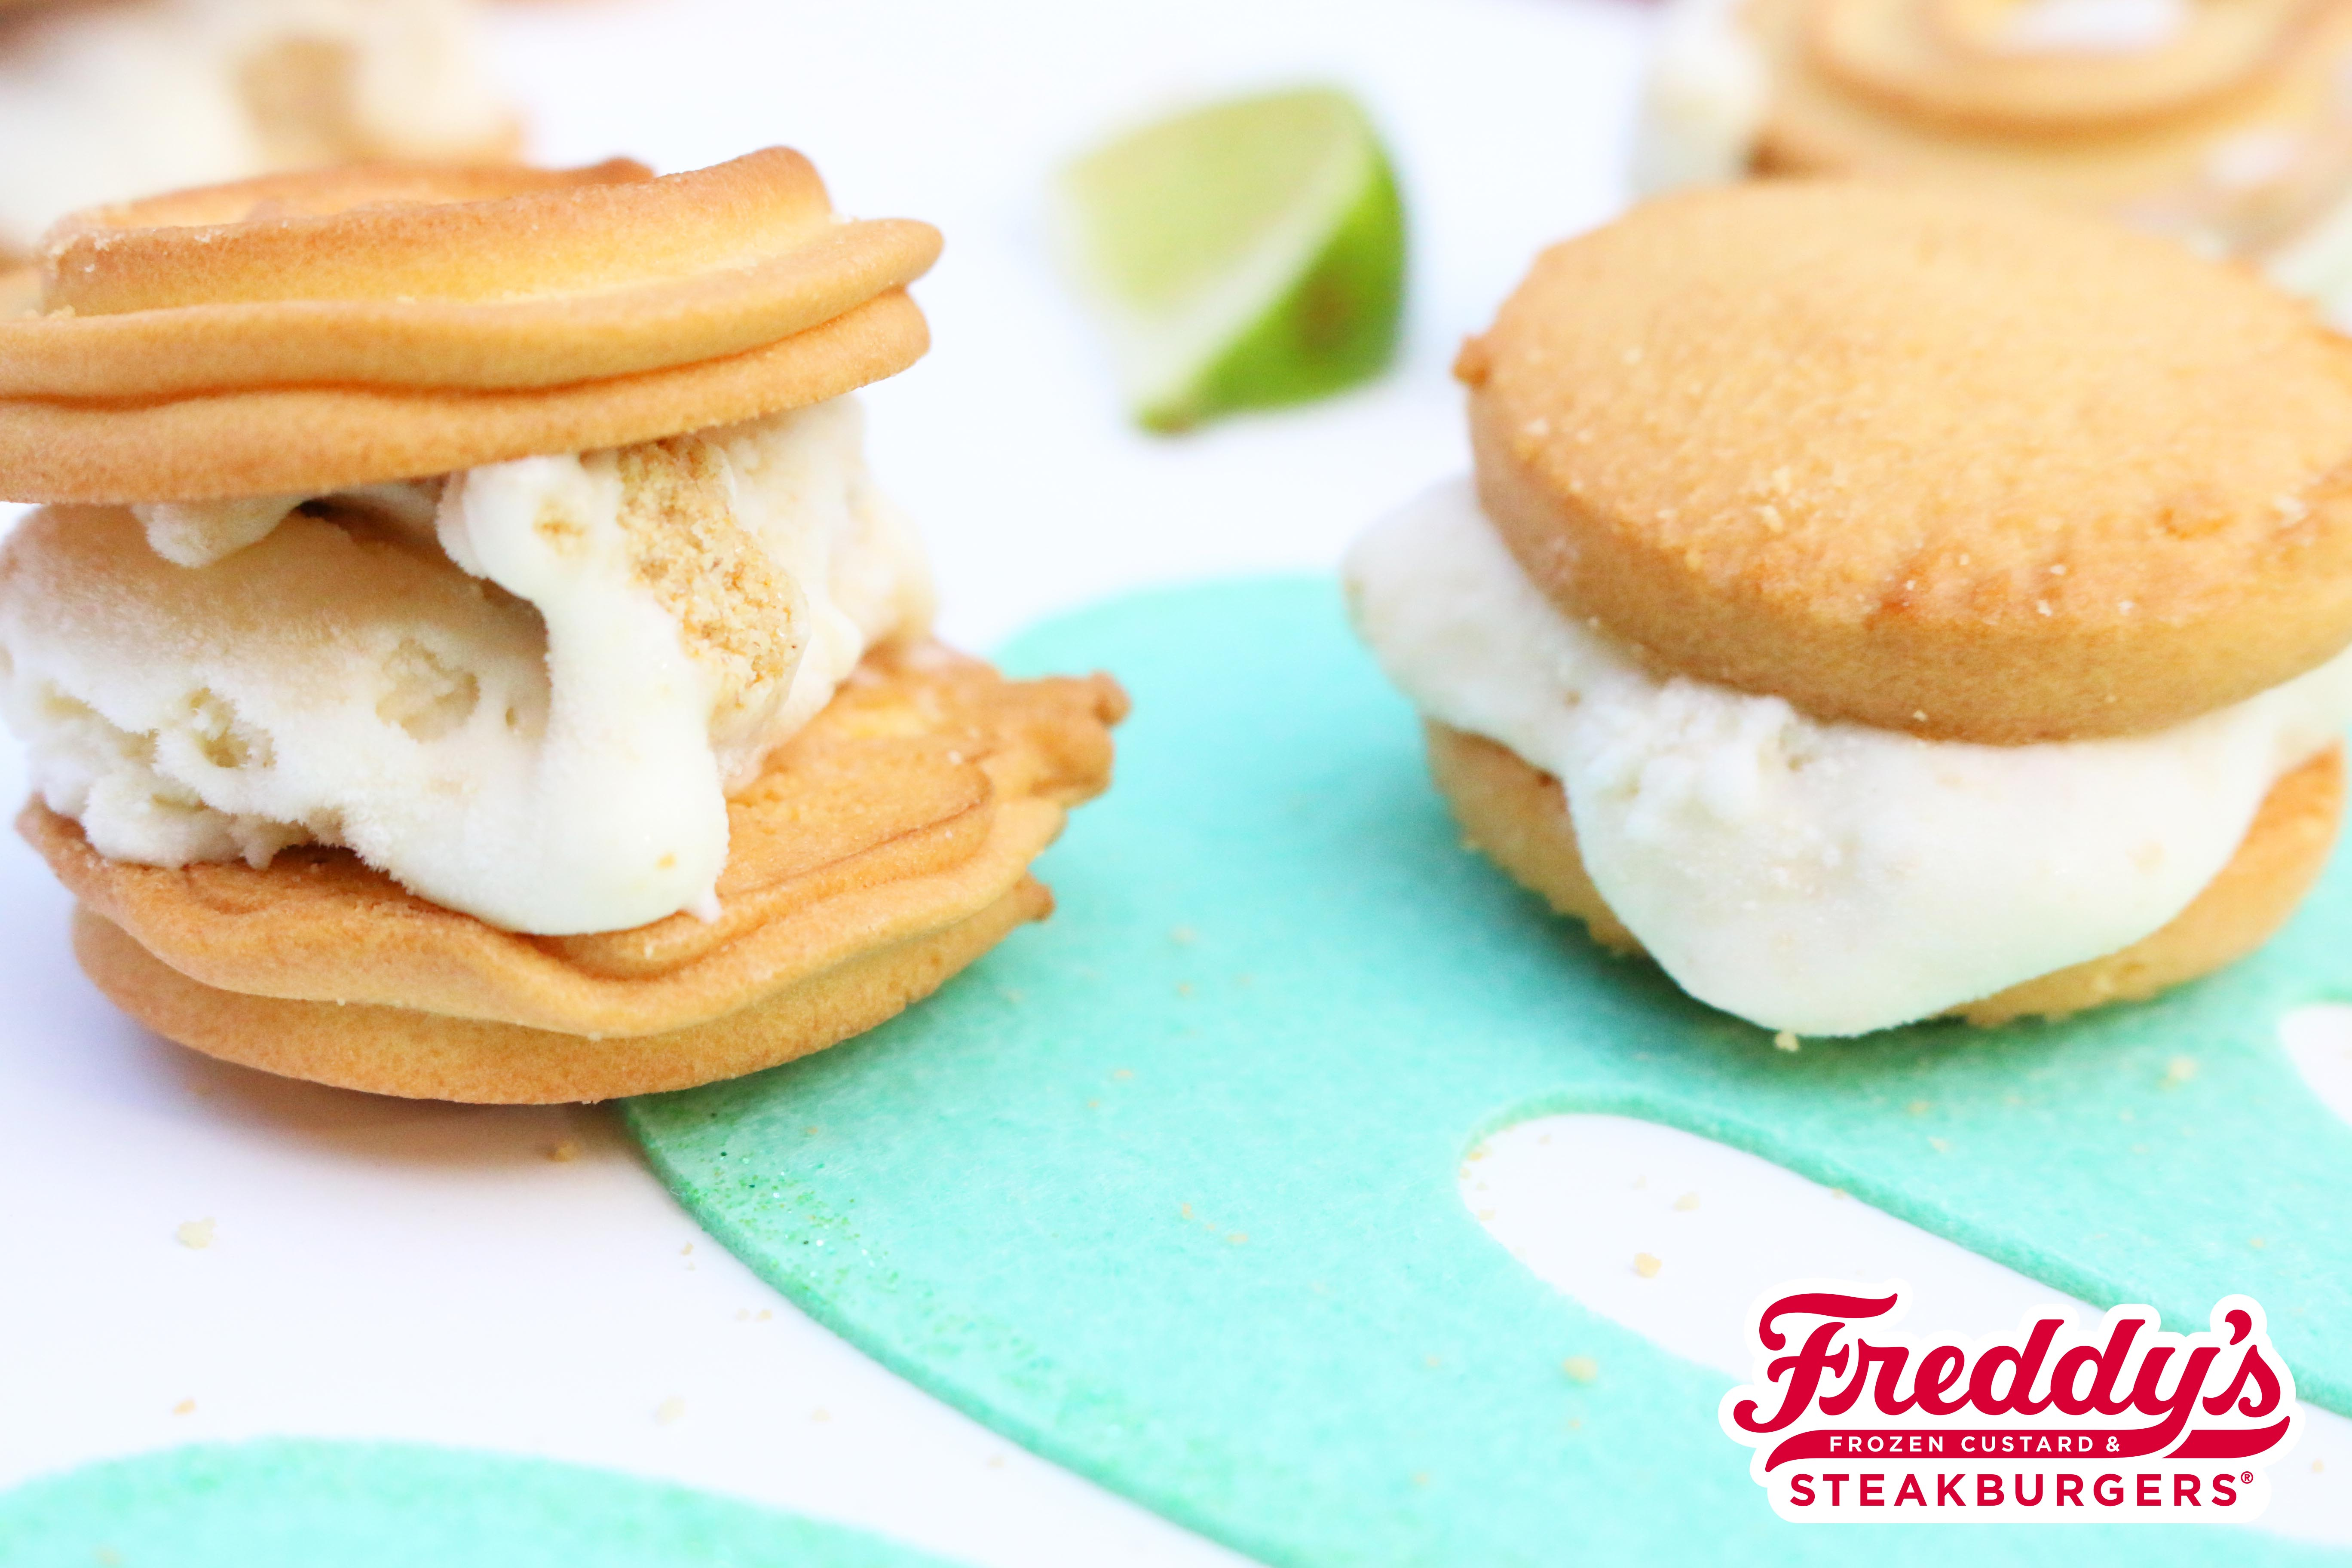 Key Lime Custard Cookies to celebrate the limited time custard!